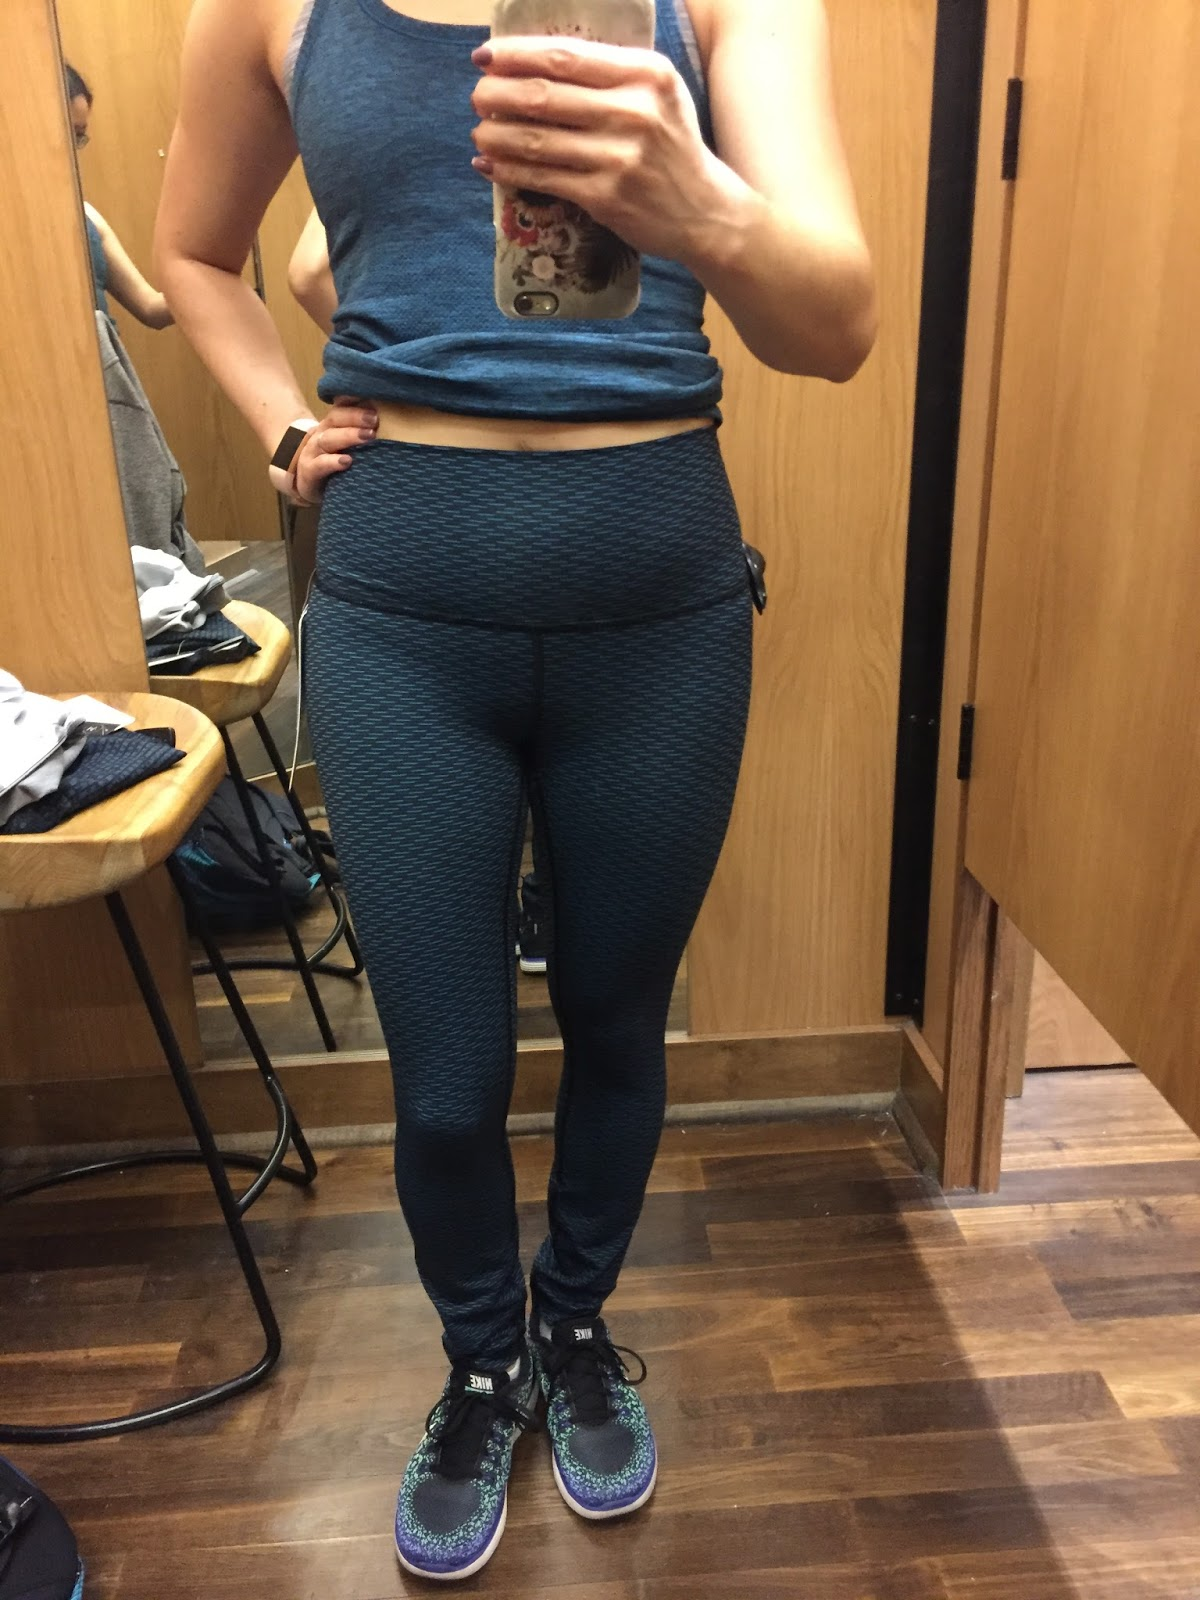 778c5fec4bc Petite Impact  Quick Try Ons At the Store! High Times Pant